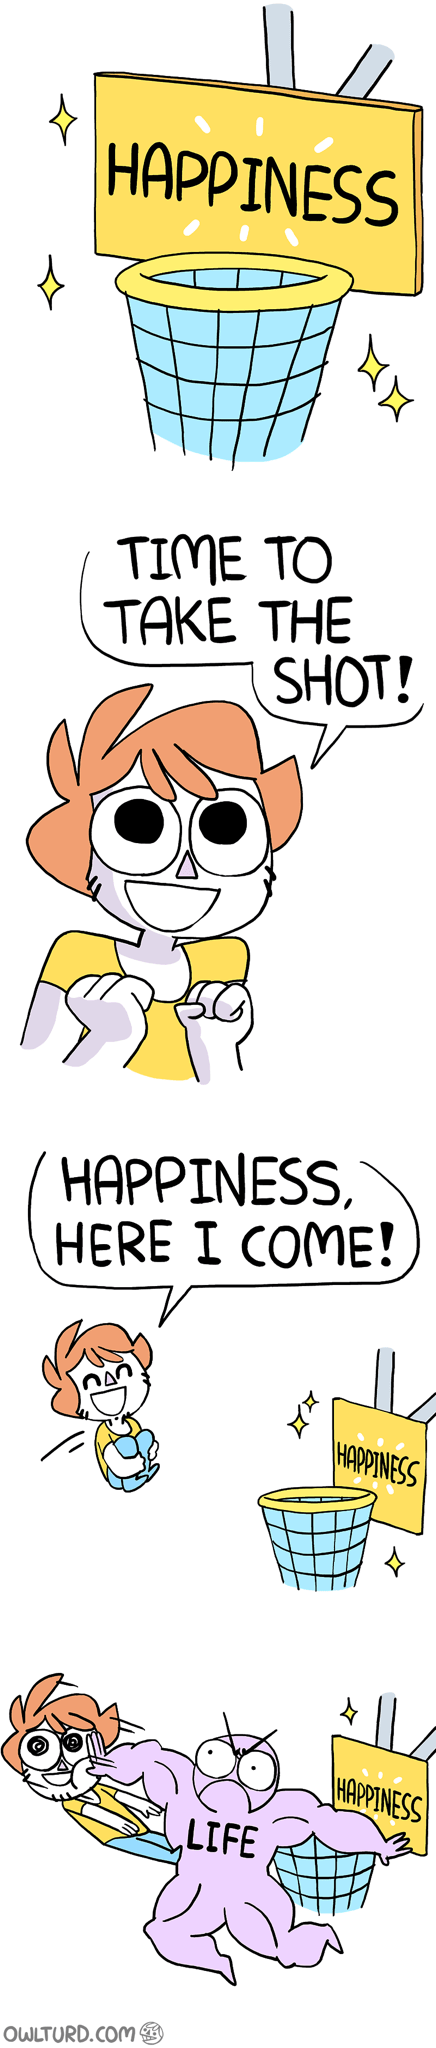 Cartoon - HAPPINESS TIME TO TAKE THE SHOT! HAPPINESS, HERE I COME! SSANIGBA  HAPPINESS LIFE OWLTURD.COM 9